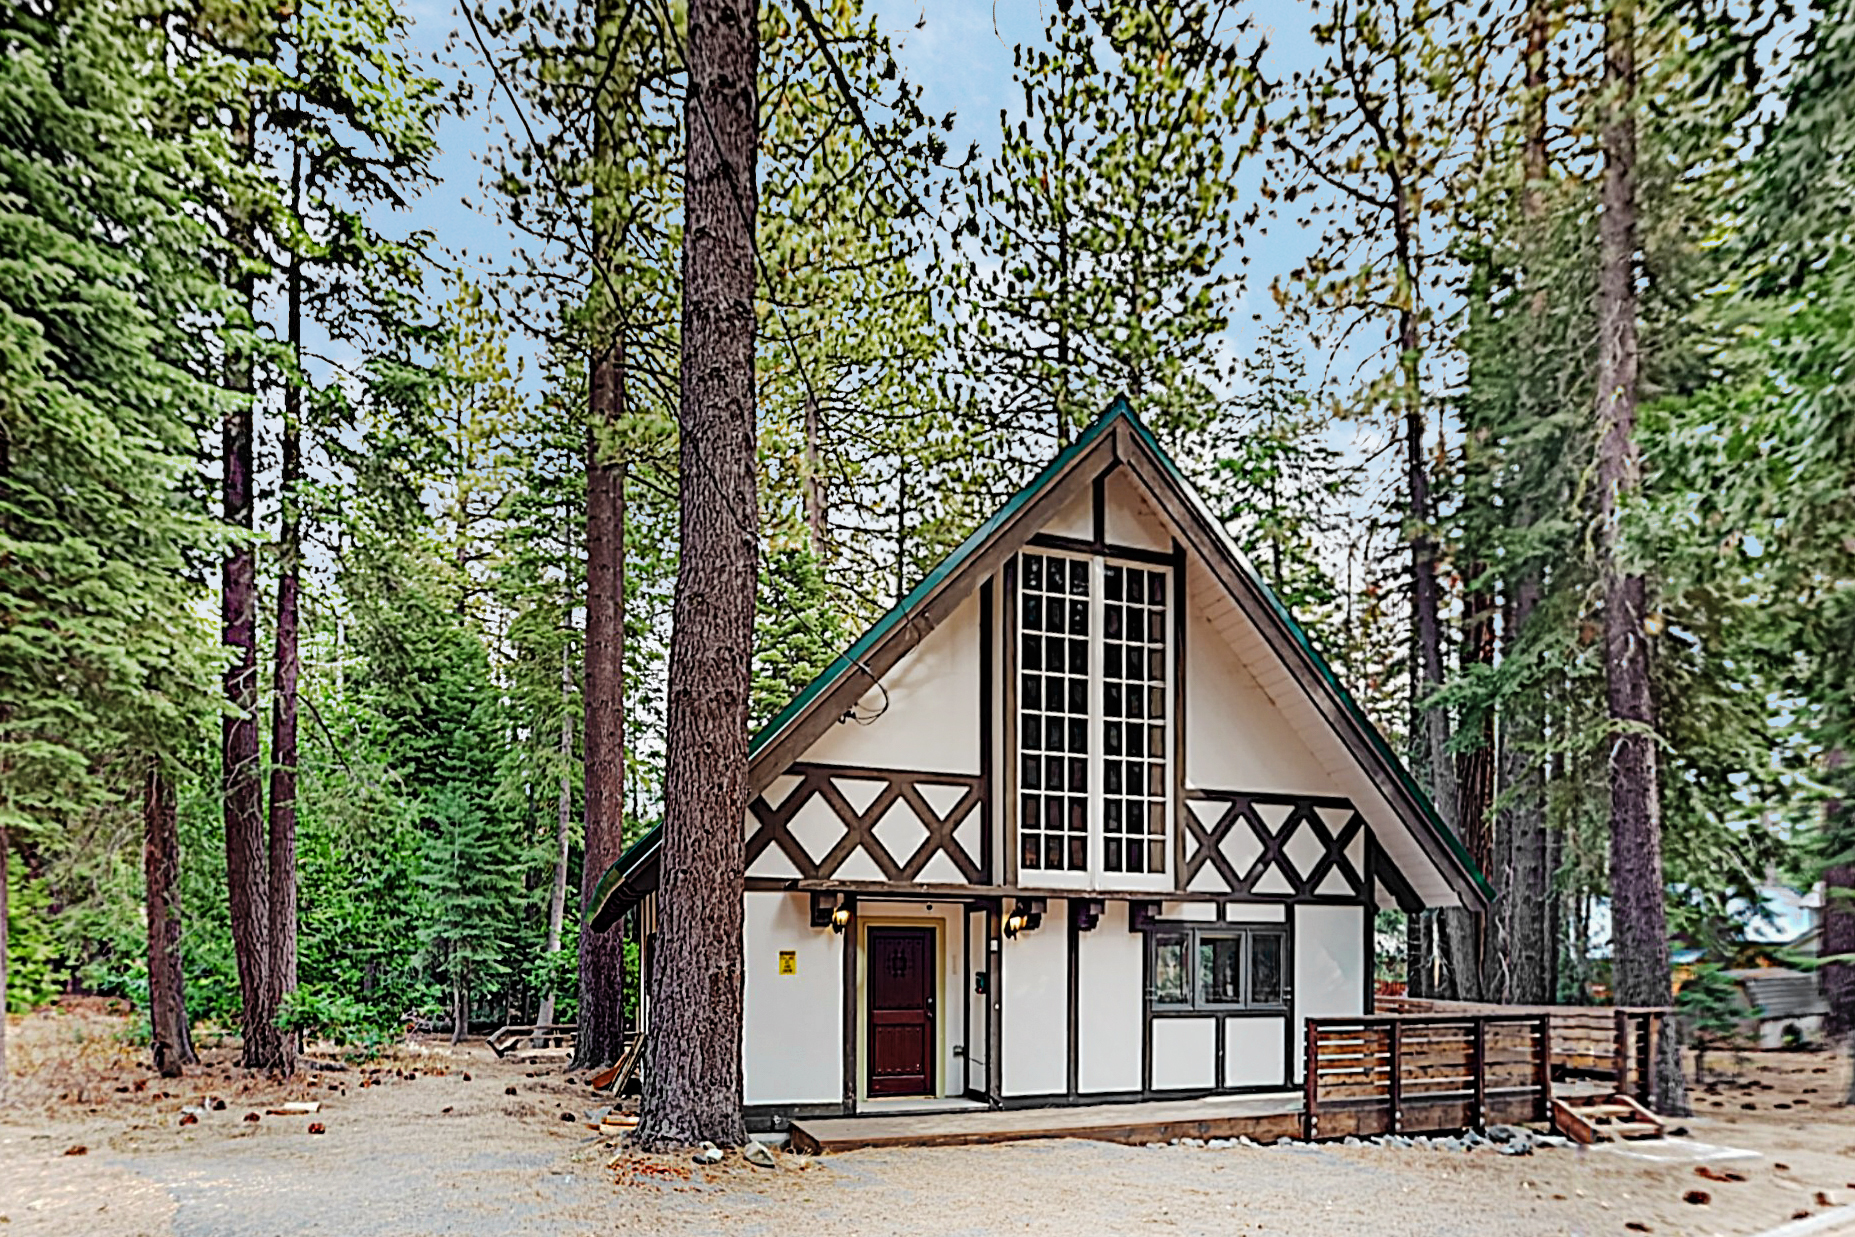 Tahoe City CA Vacation Rental Welcome to Lake